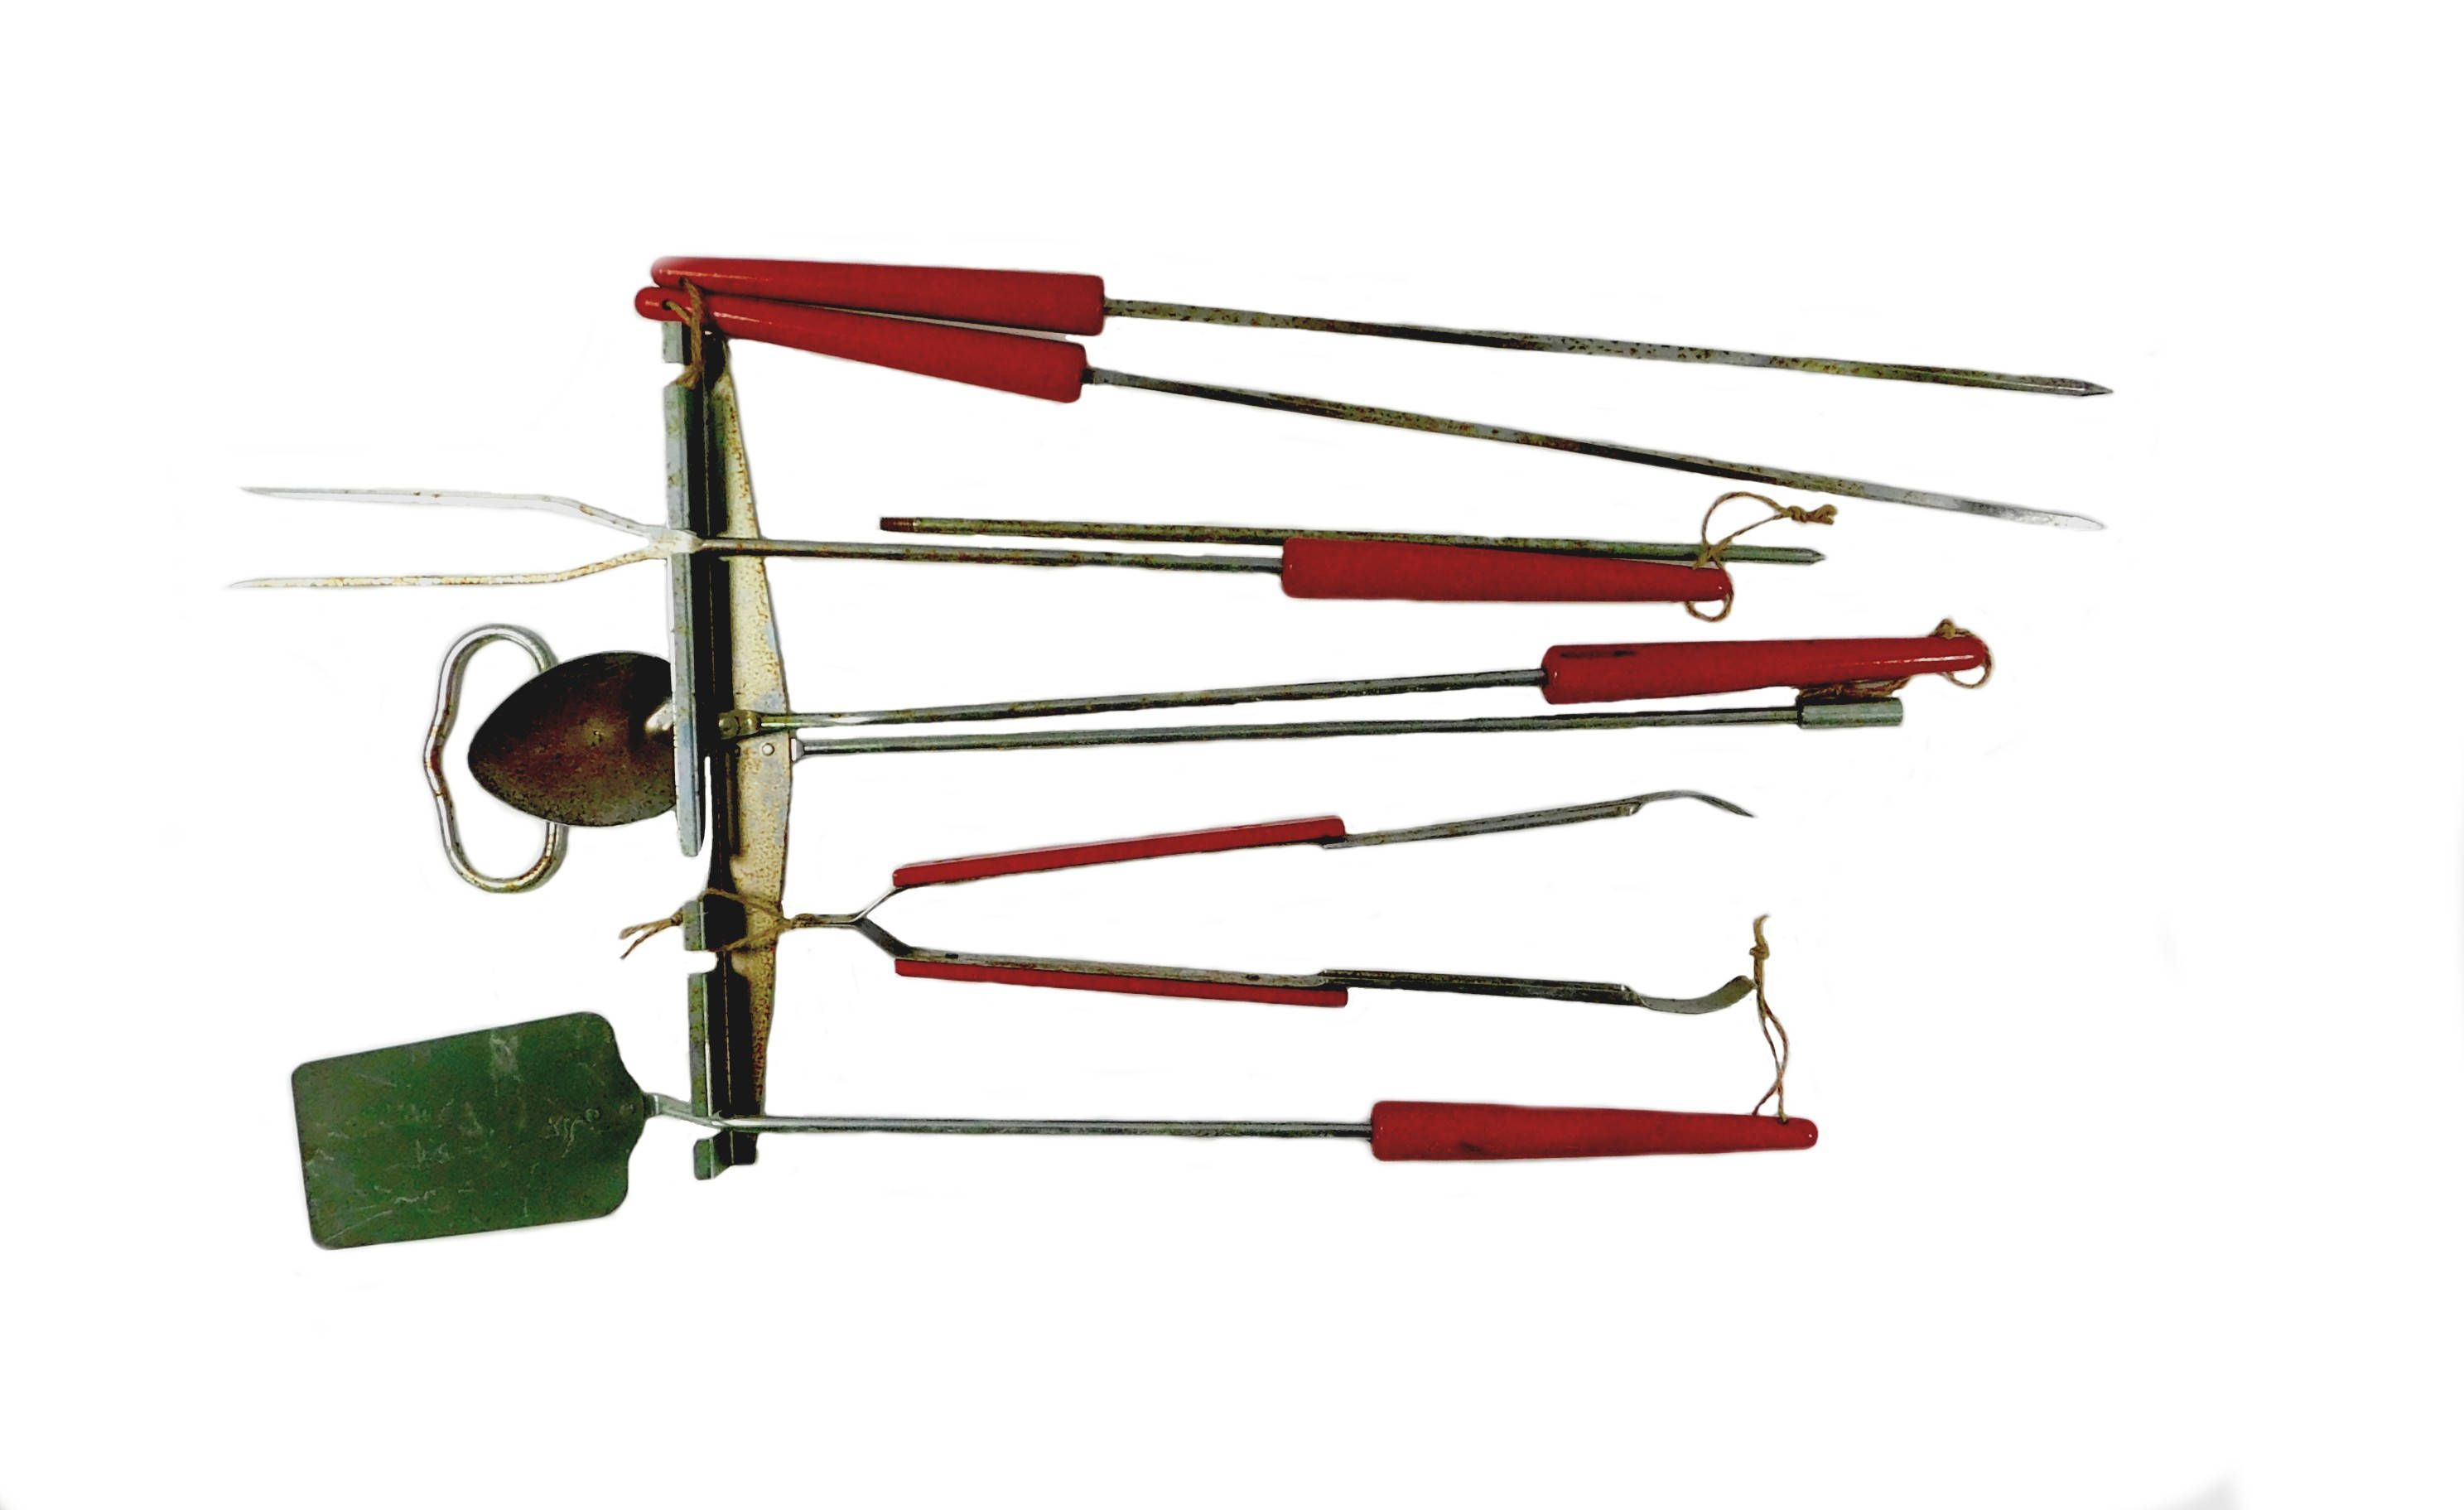 Vintage Outdoor Cooking Utensil Set Red Handled Barbecue